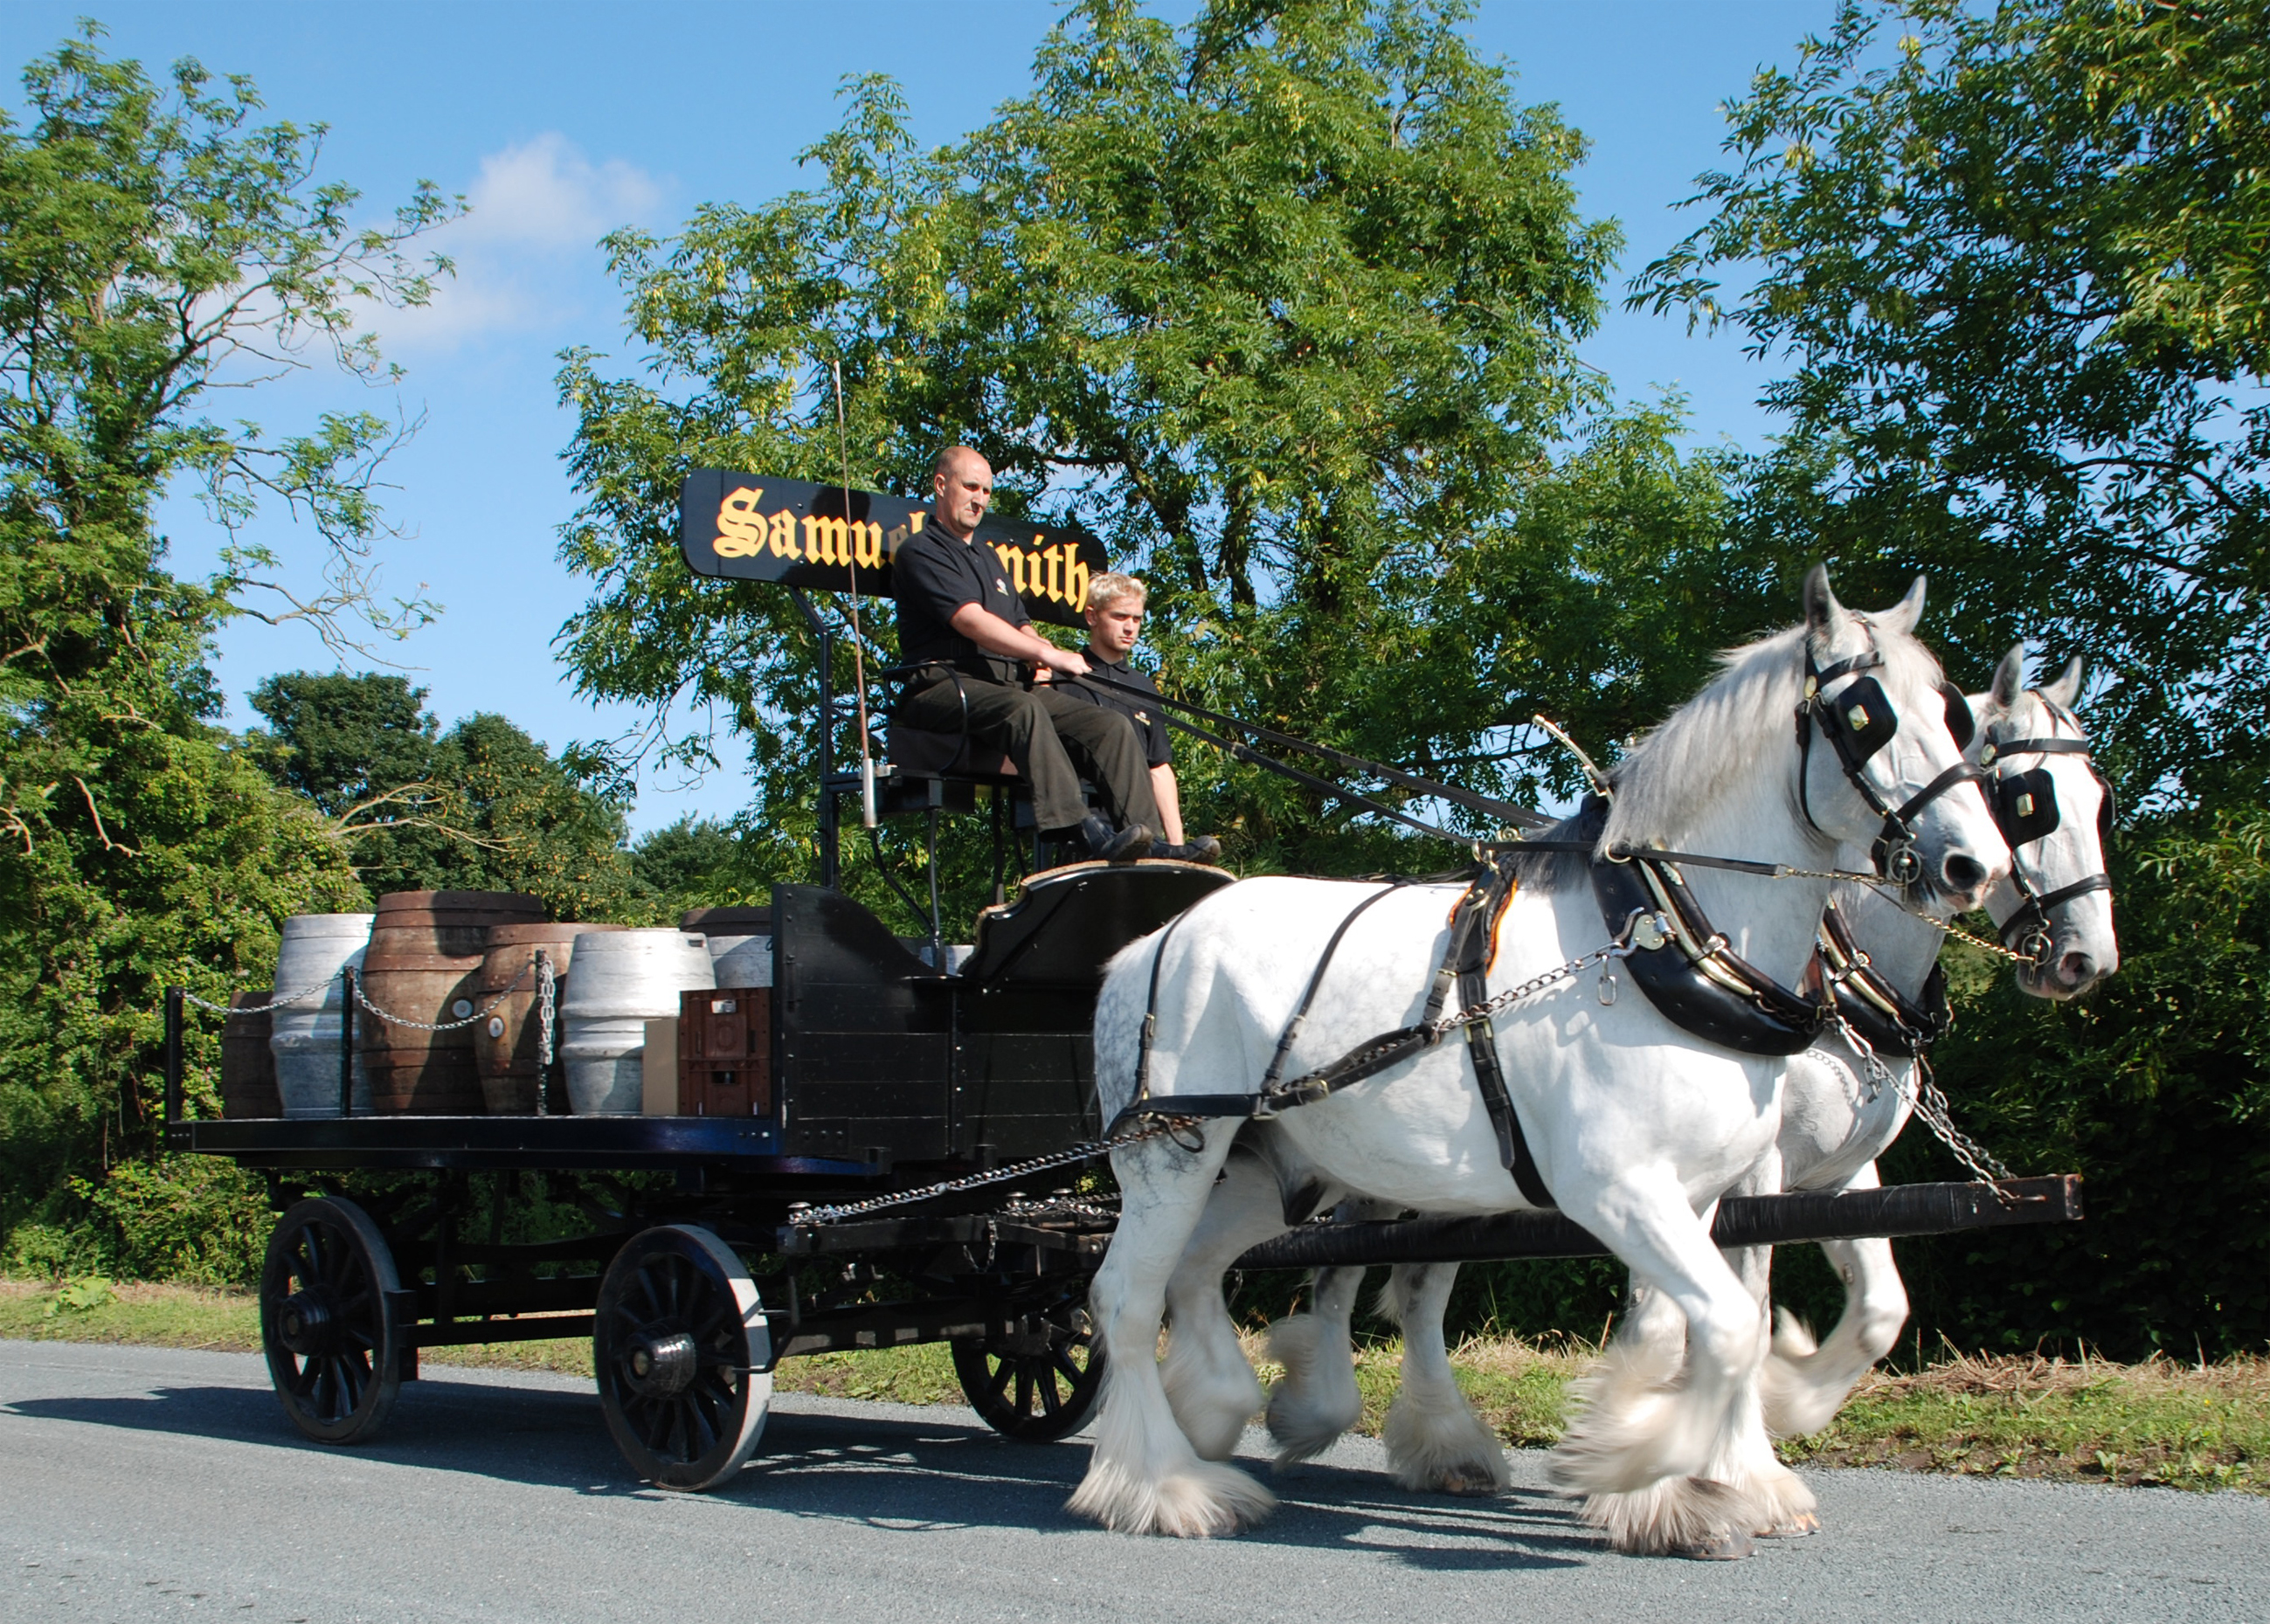 /system/uploads/storage/article_image/asset/163/shire_horse_big.jpg